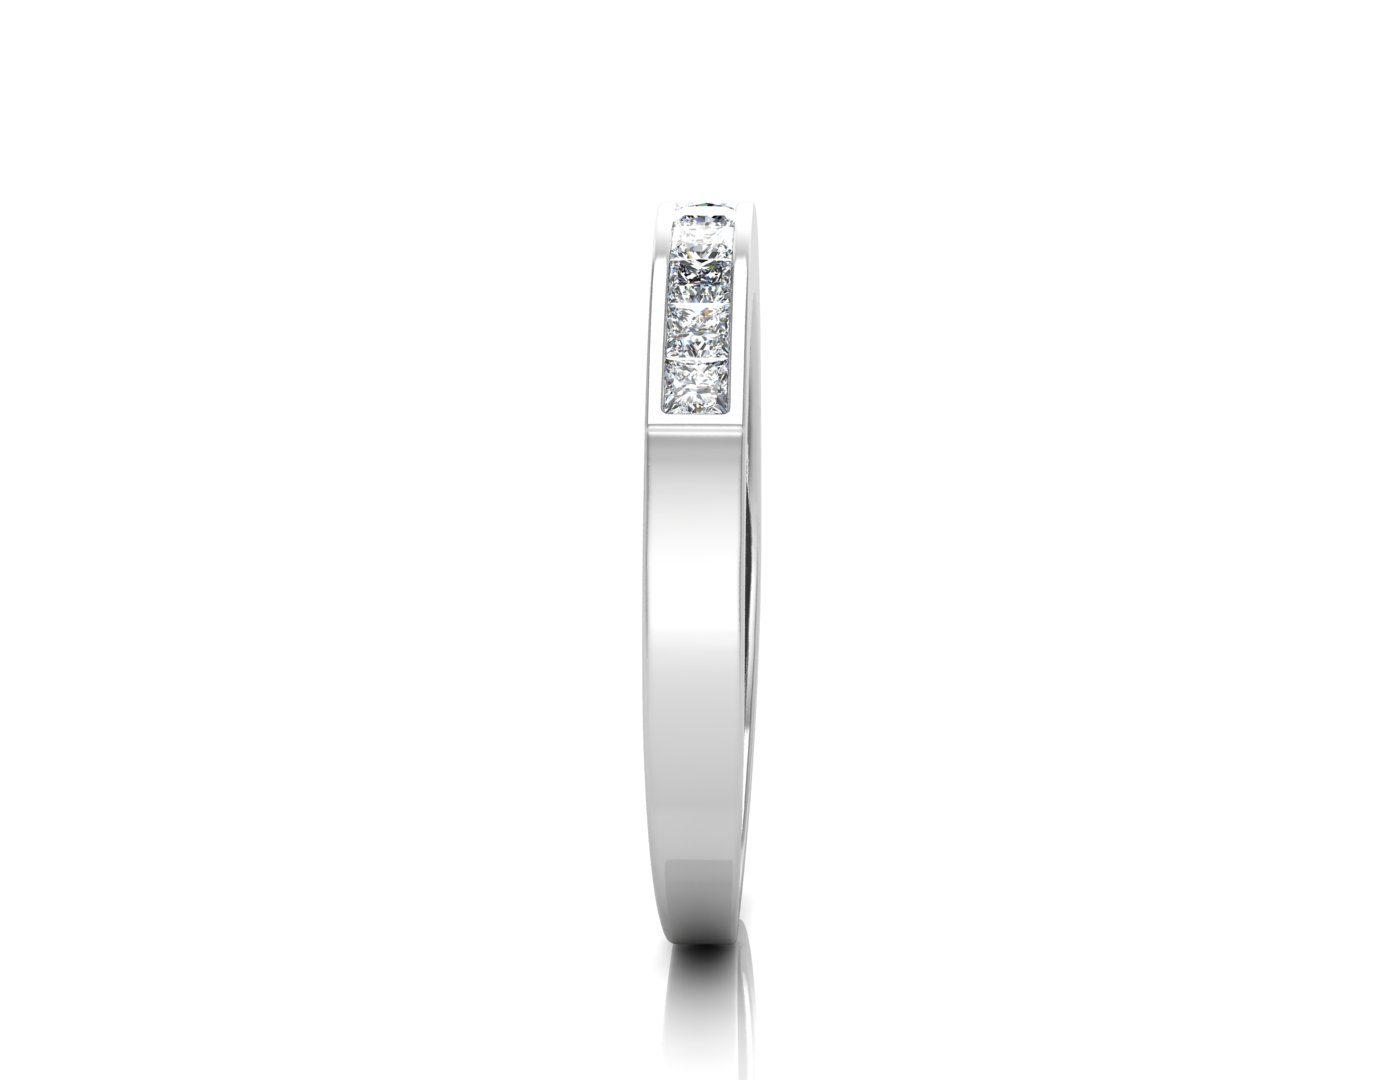 Lot 50 - 9ct White Gold Channel Set Half Eternity Diamond Ring 0.50 Carats